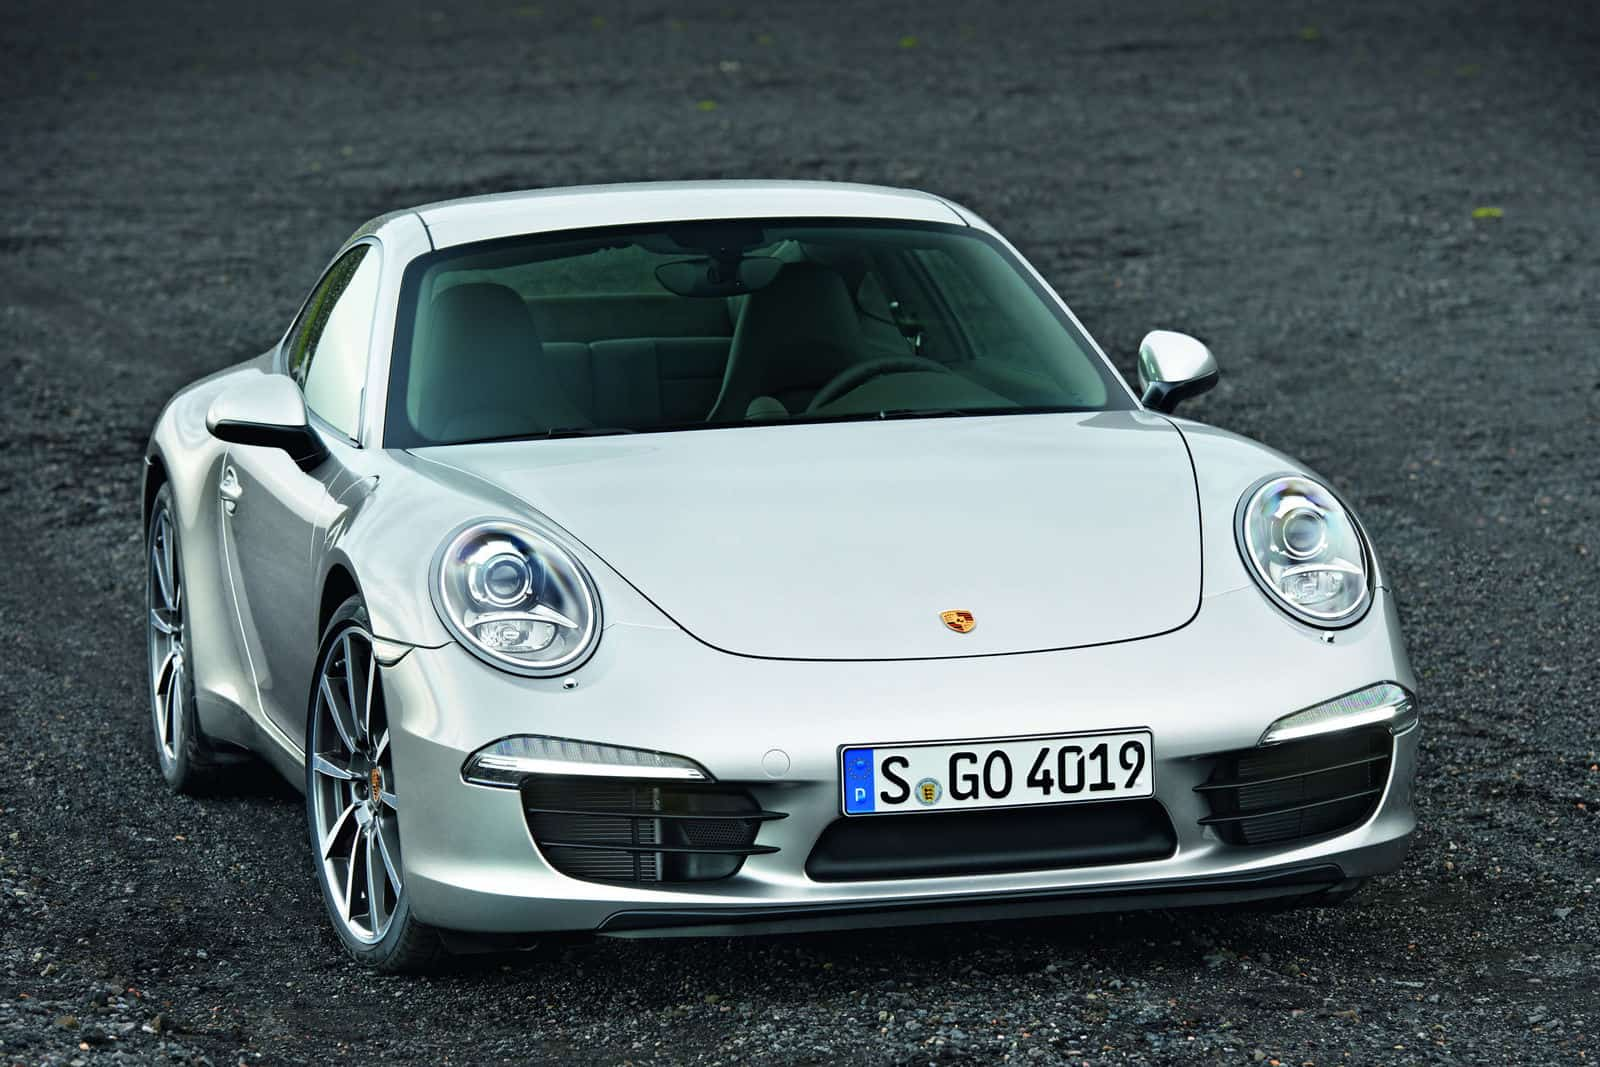 2012-Porsche-911-Carrera-991-Silver